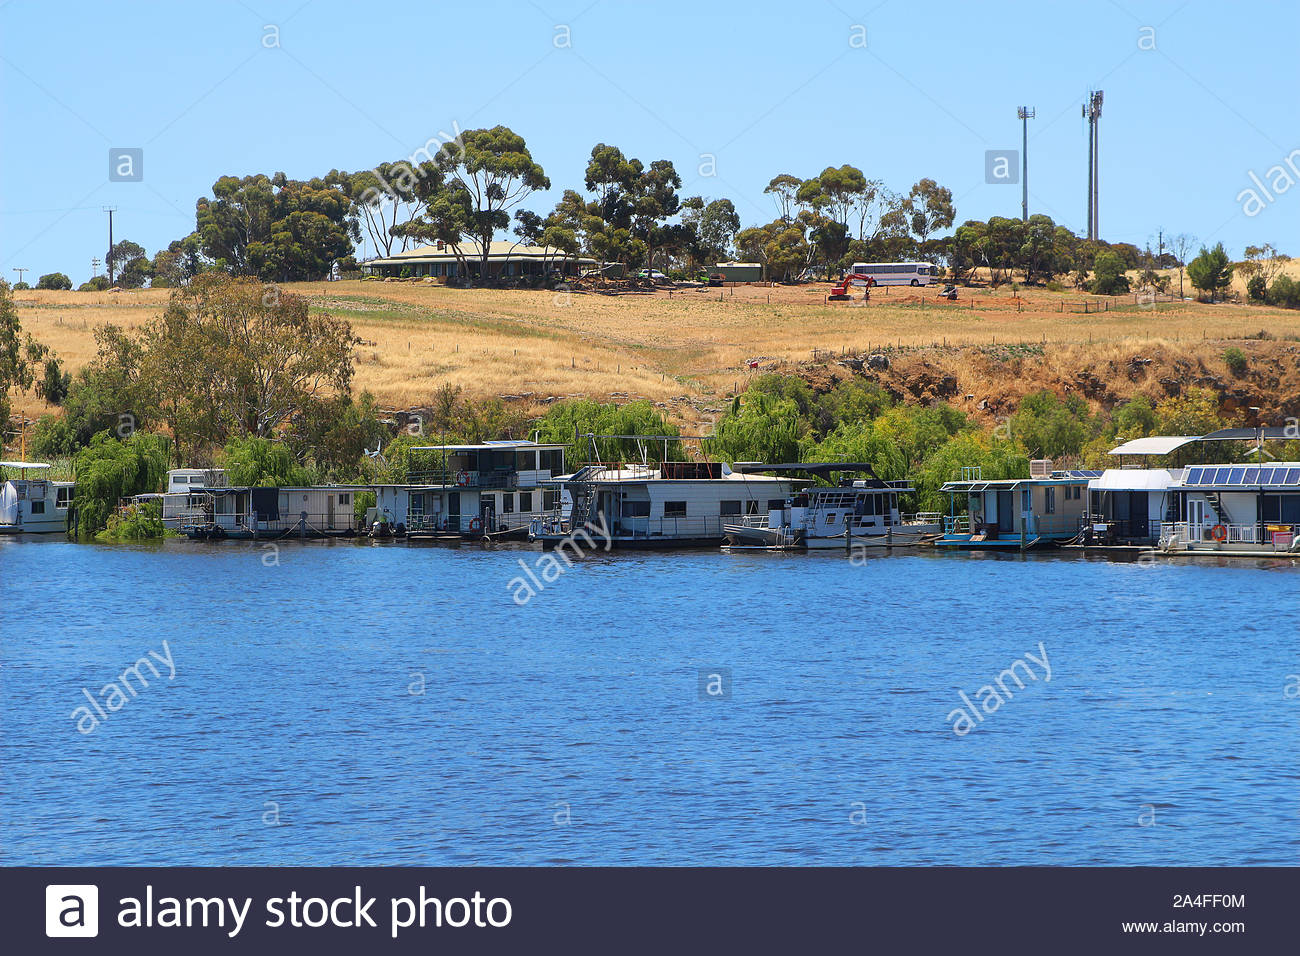 Wonderful relaxed lifestyle in the house boats at the banks of the Murray river (Murray Bridge, South Australia) Stock Photo